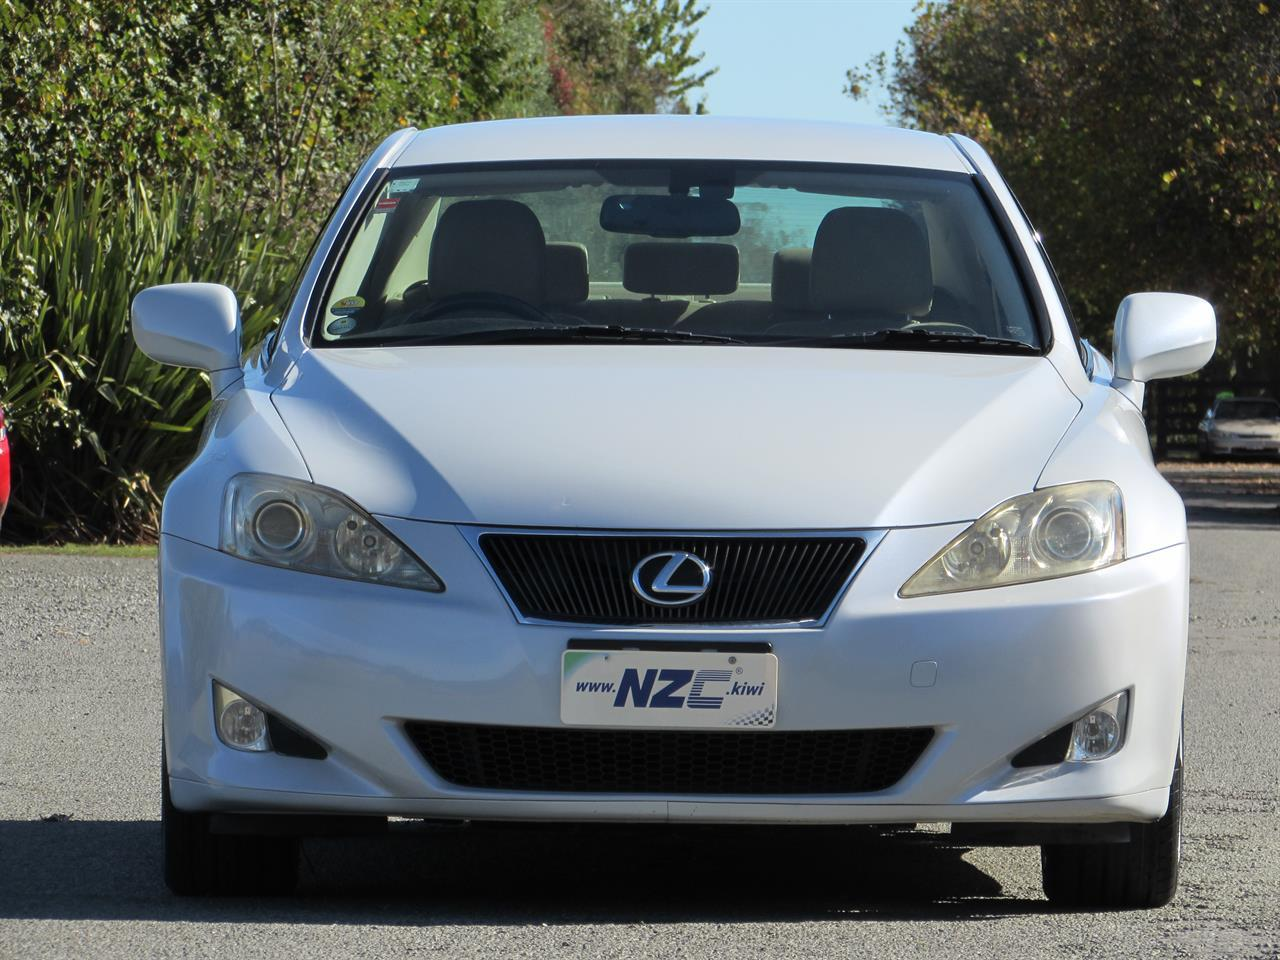 image-1, 2007 Lexus IS 250 at Christchurch